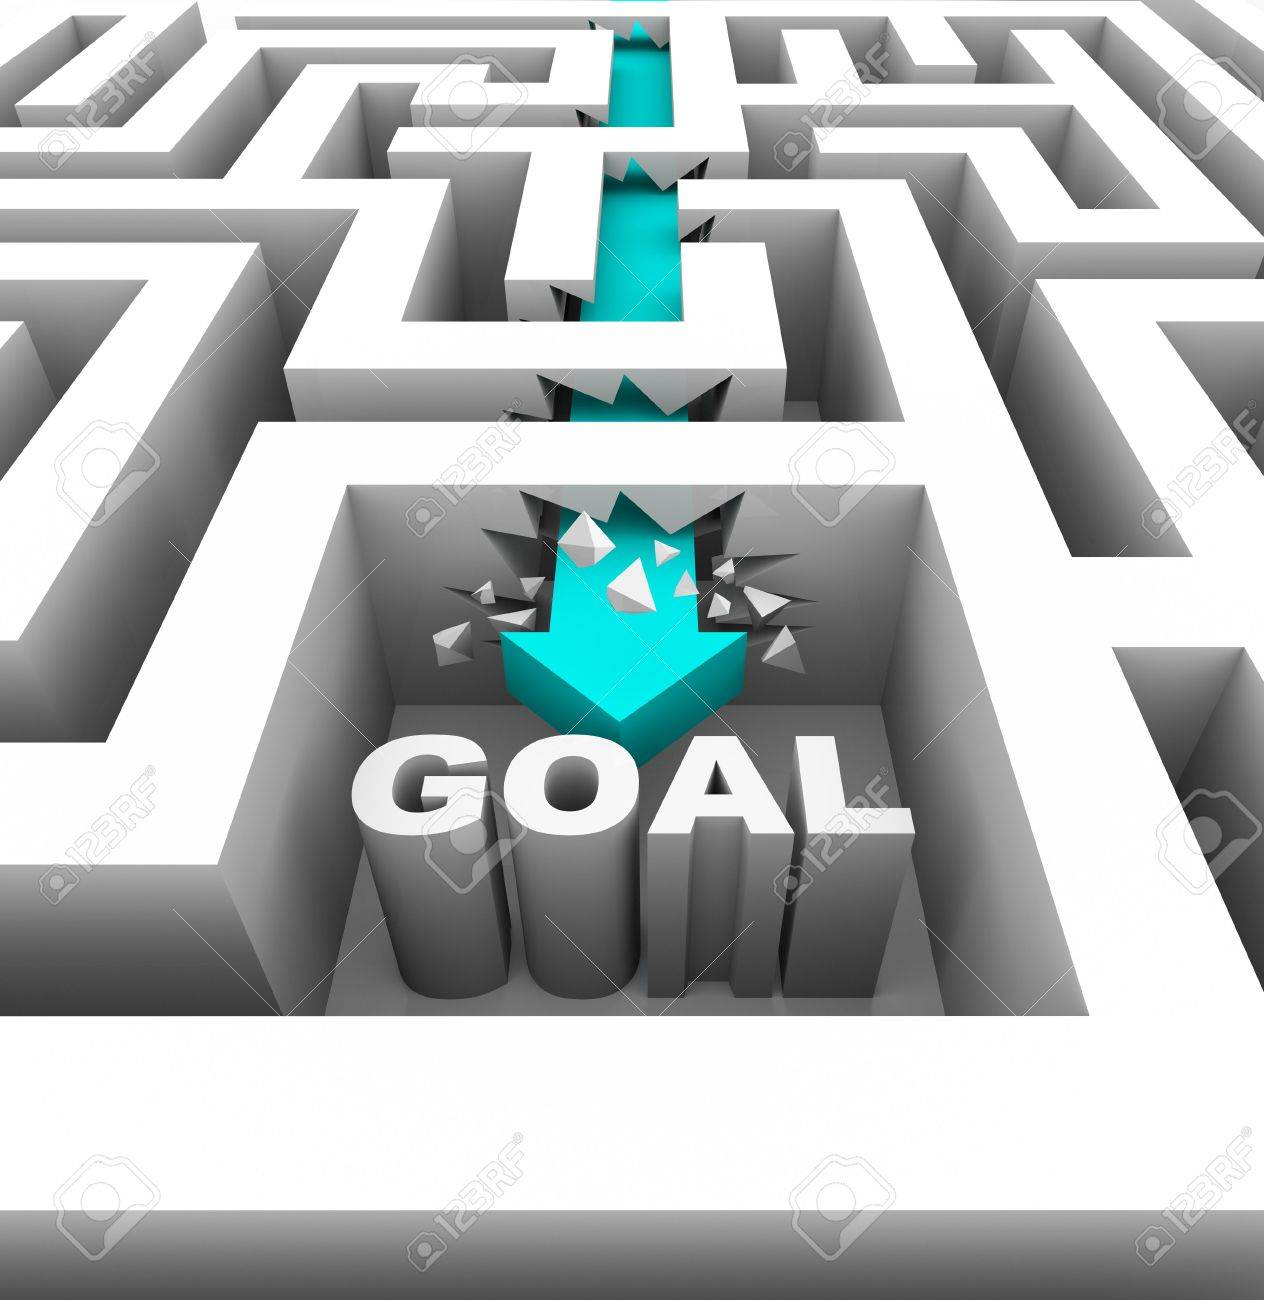 A arrow breaks through walls in a maze to reach a goal Stock Photo - 7608579